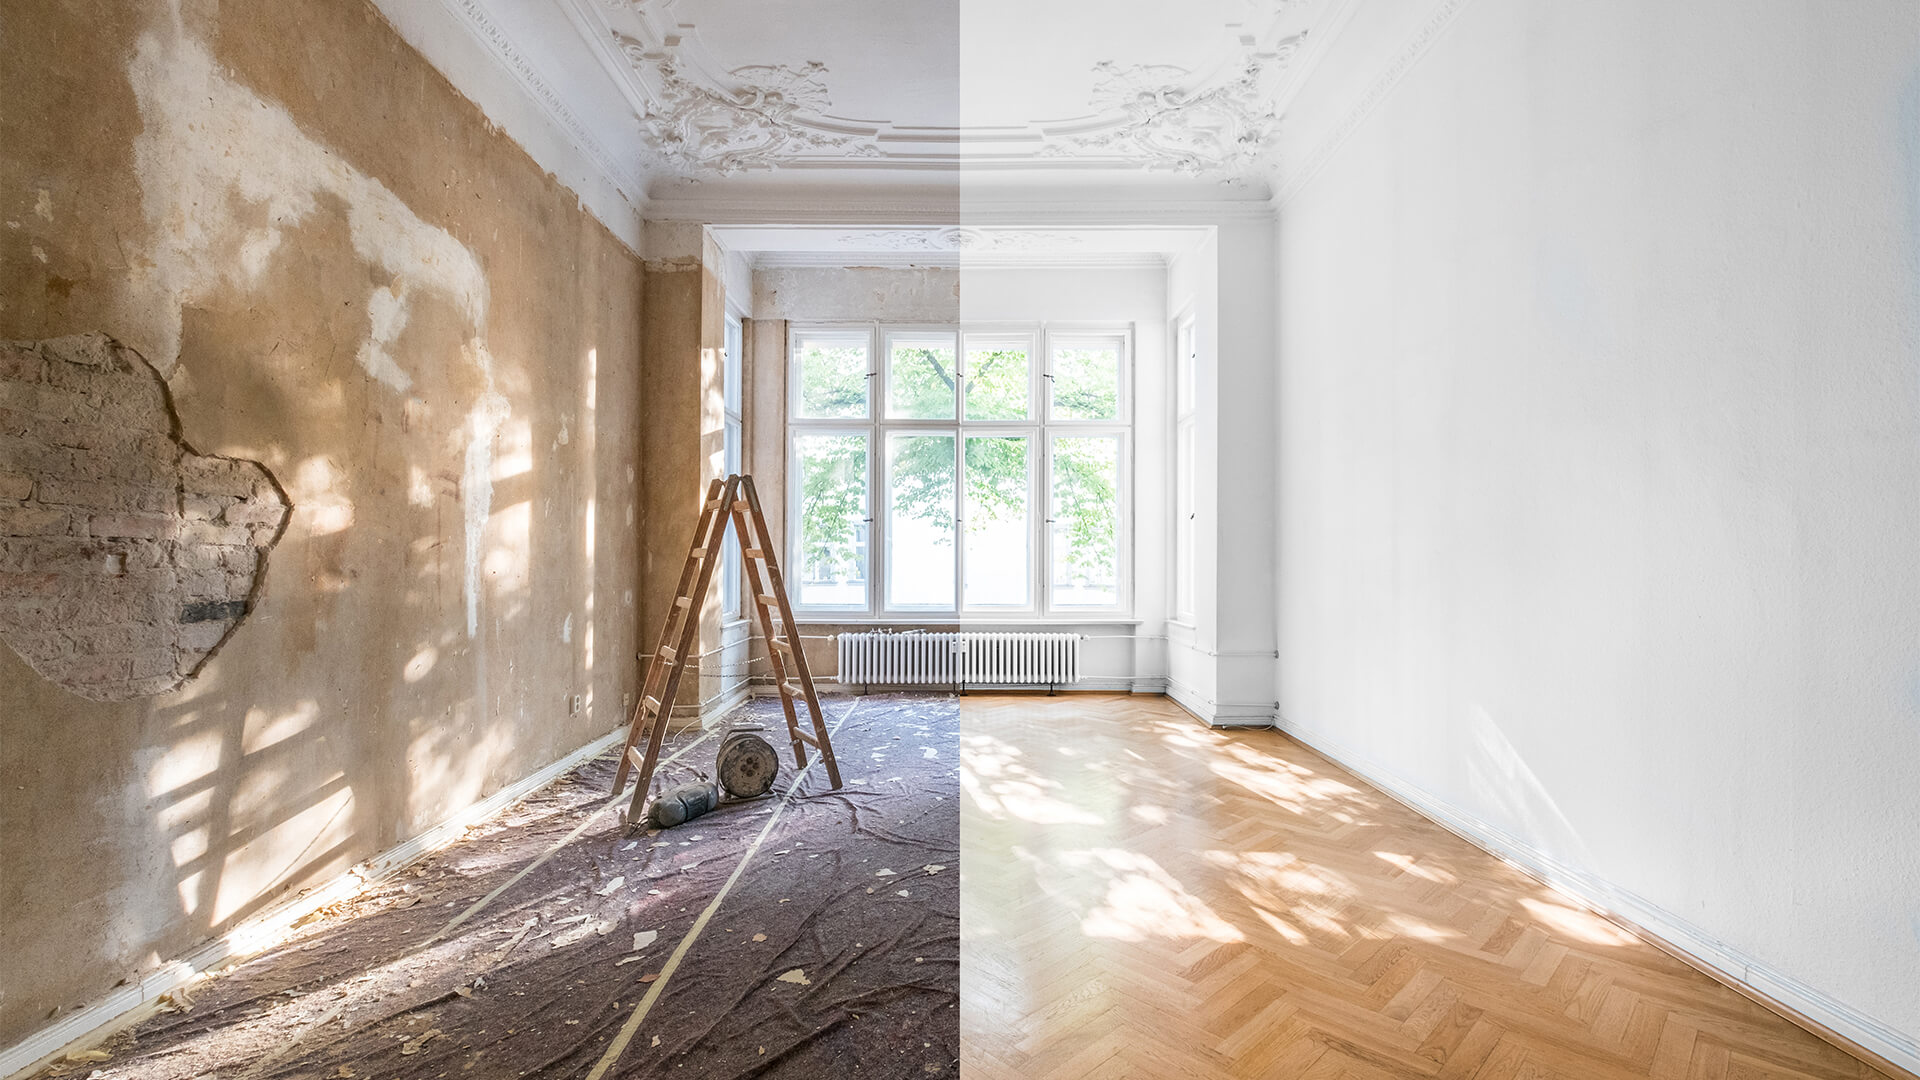 Before and after home renovation showing the left side of the room with broken floor panels and chipped paint, and the after on the right with painted walls and perfect floors